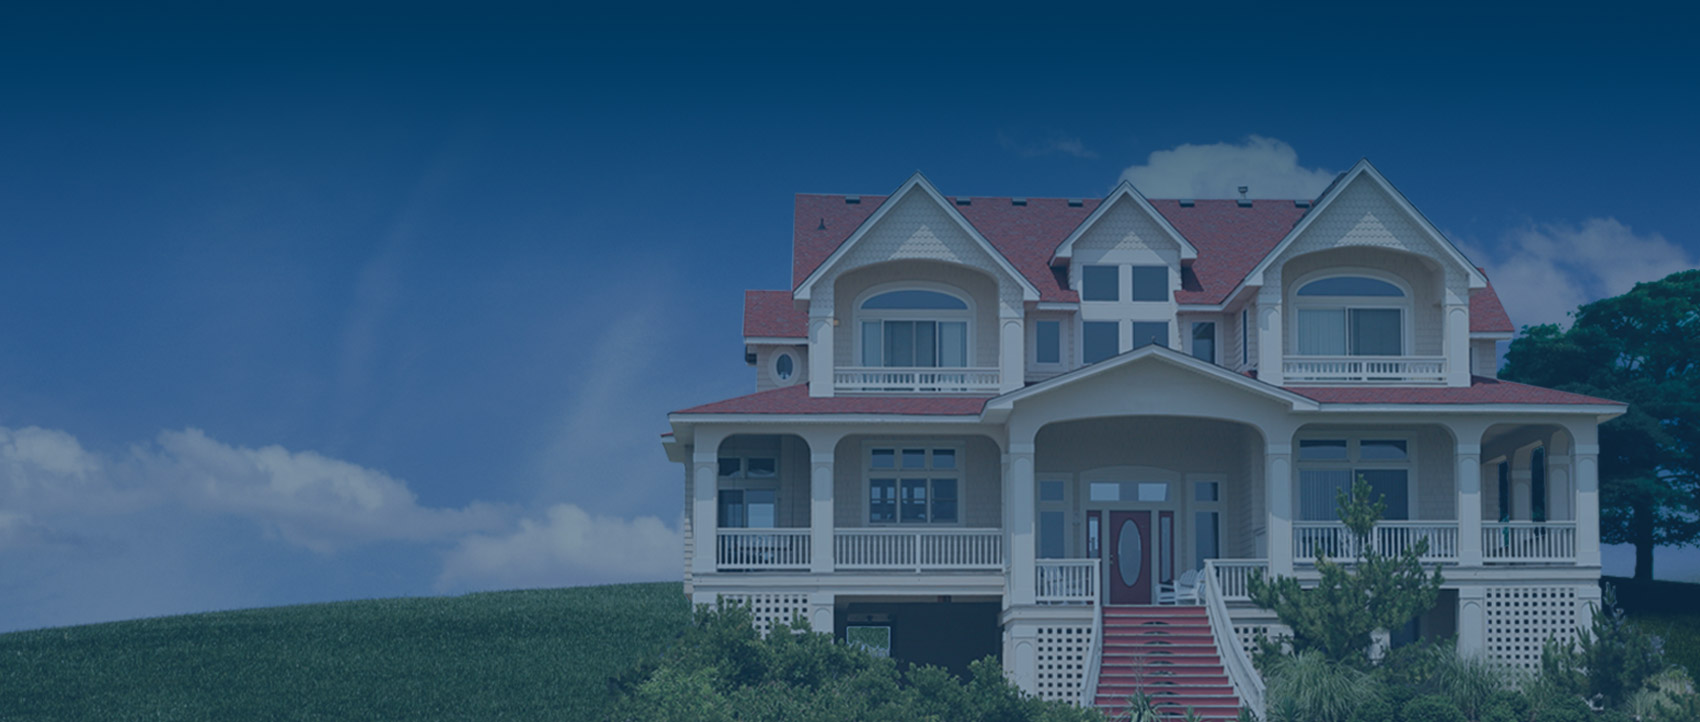 Home Inspection Checklist in Biloxi